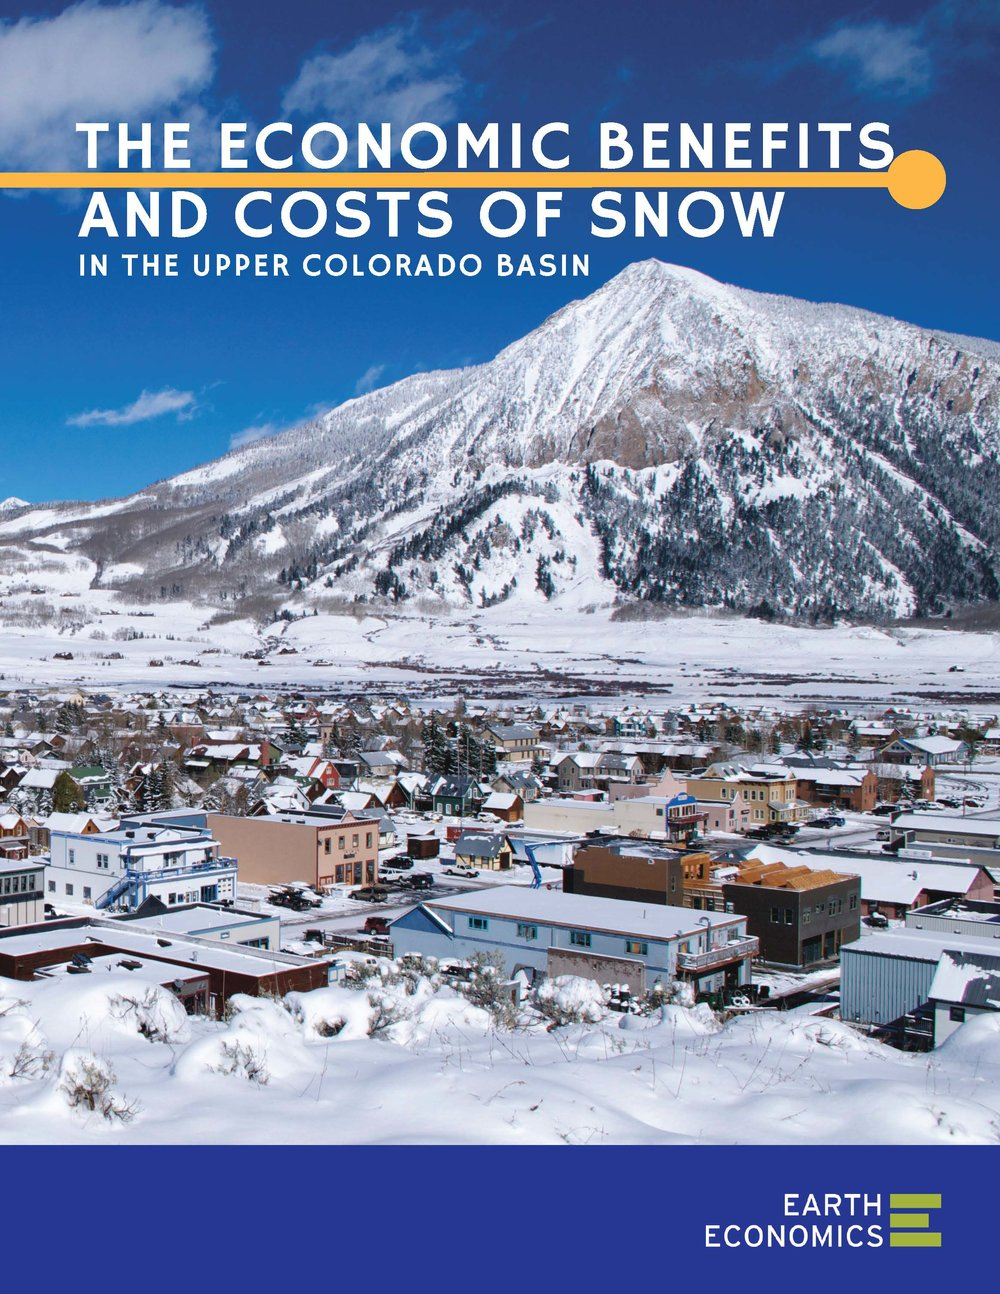 Cover_EconomicBenefitsandCostsofSnow_EarthEconomics_2017.jpg